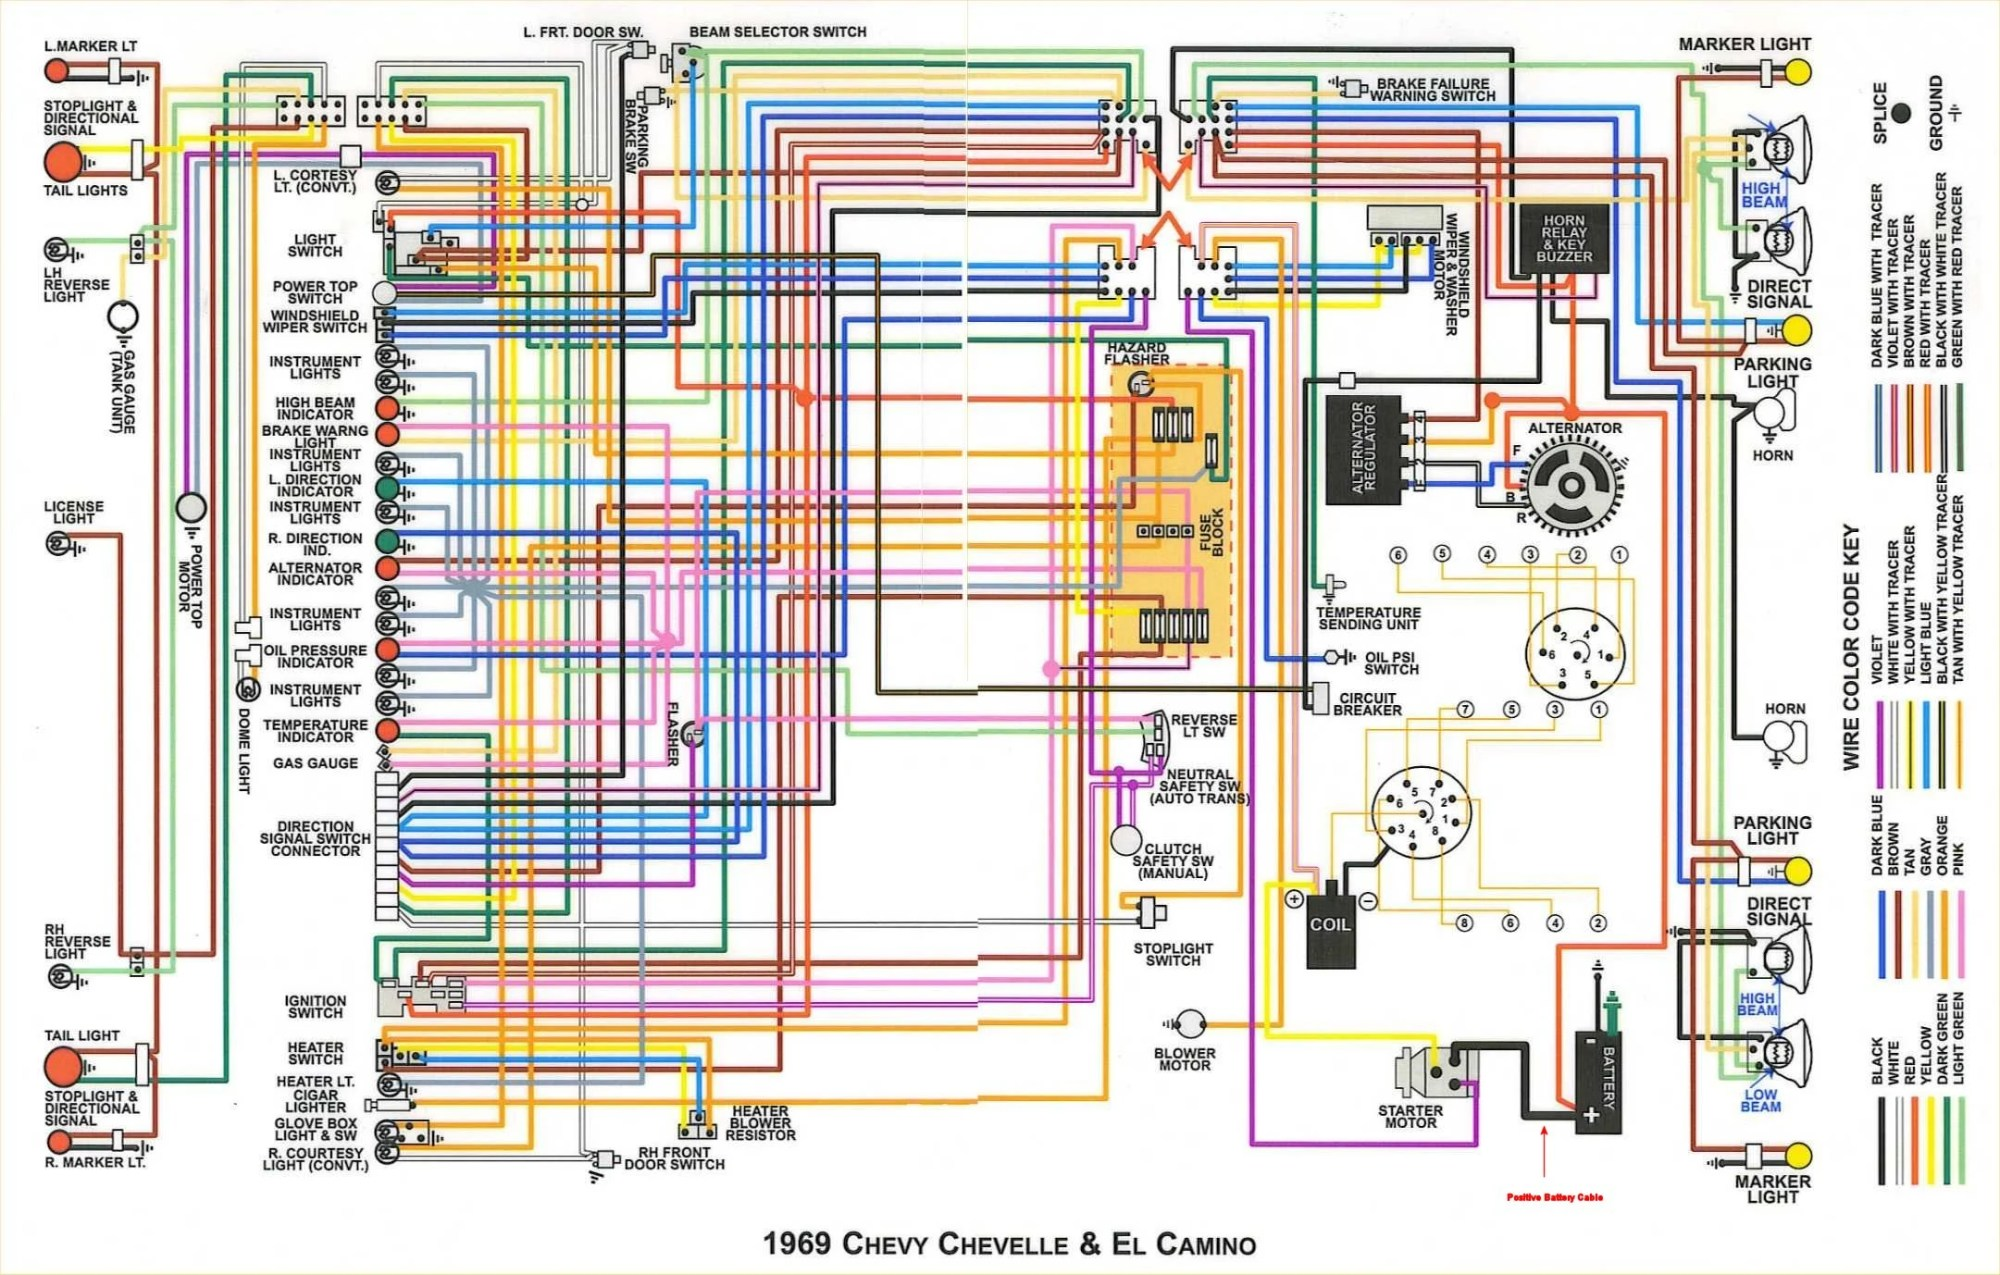 hight resolution of 1967 chevelle dash wiring diagram wiring diagrams scematic chevelle wiring diagram 1972 1966 chevy chevelle wiring